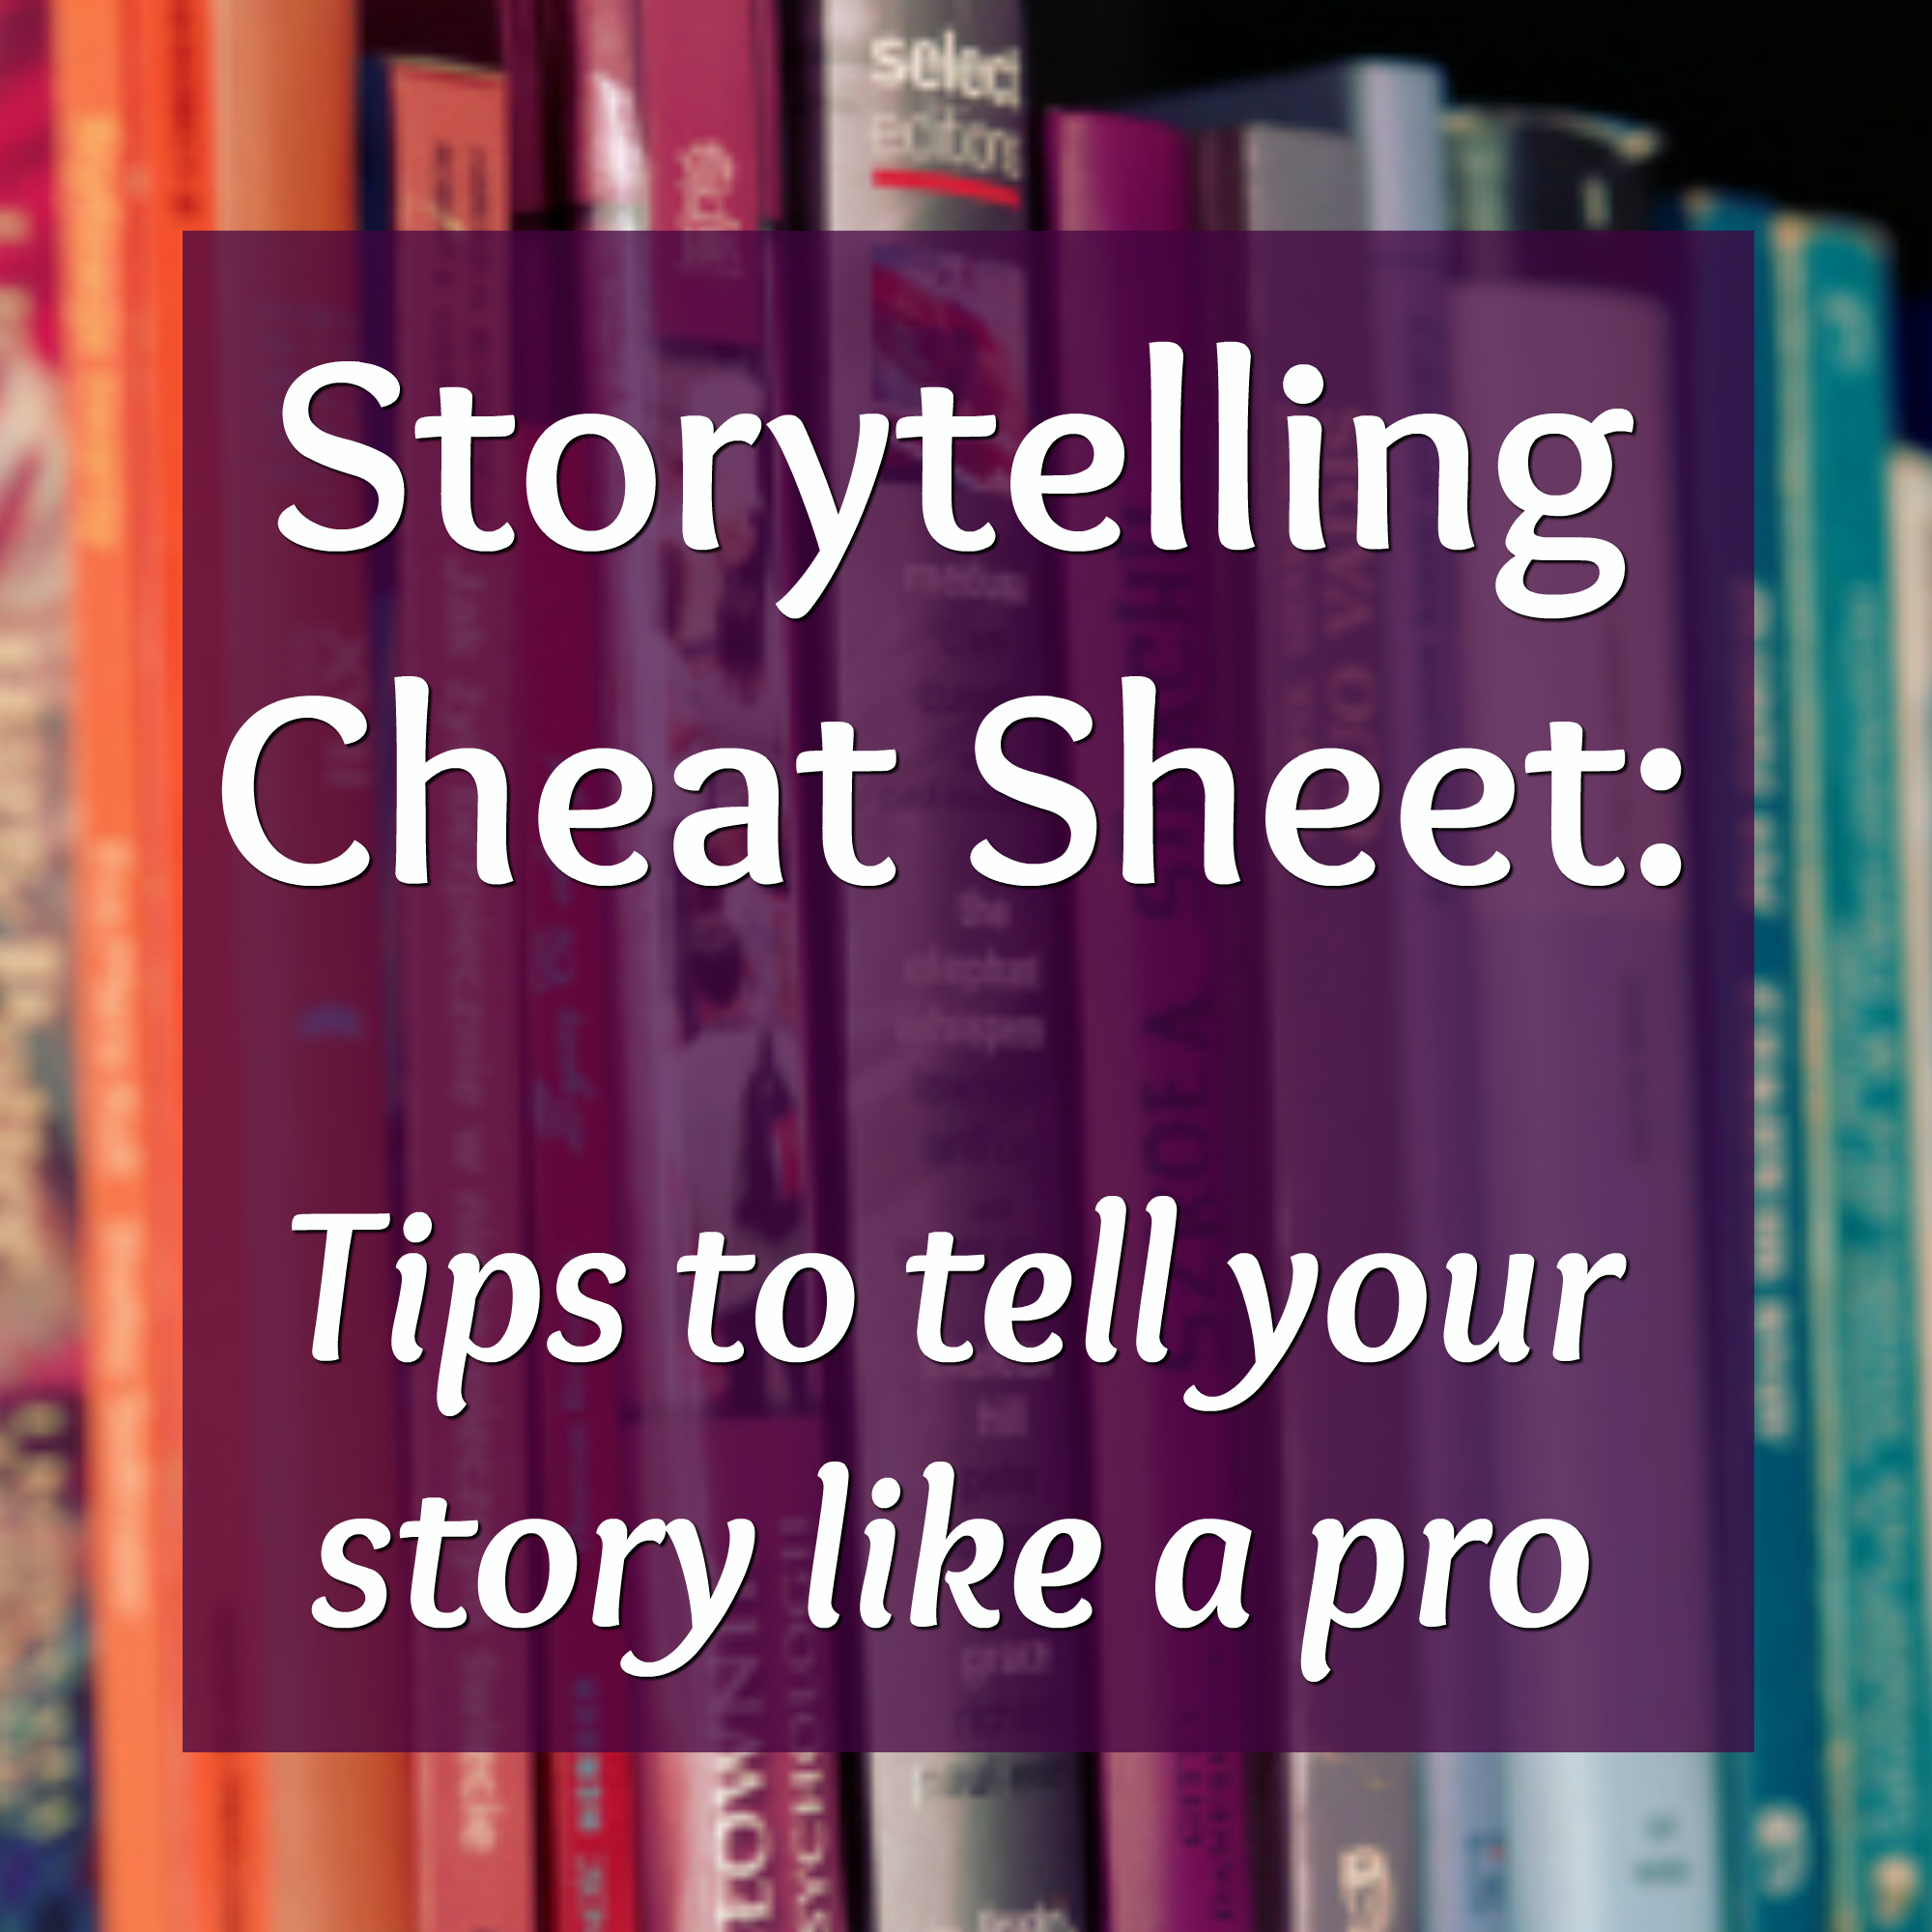 Storytelling Cheat Sheet